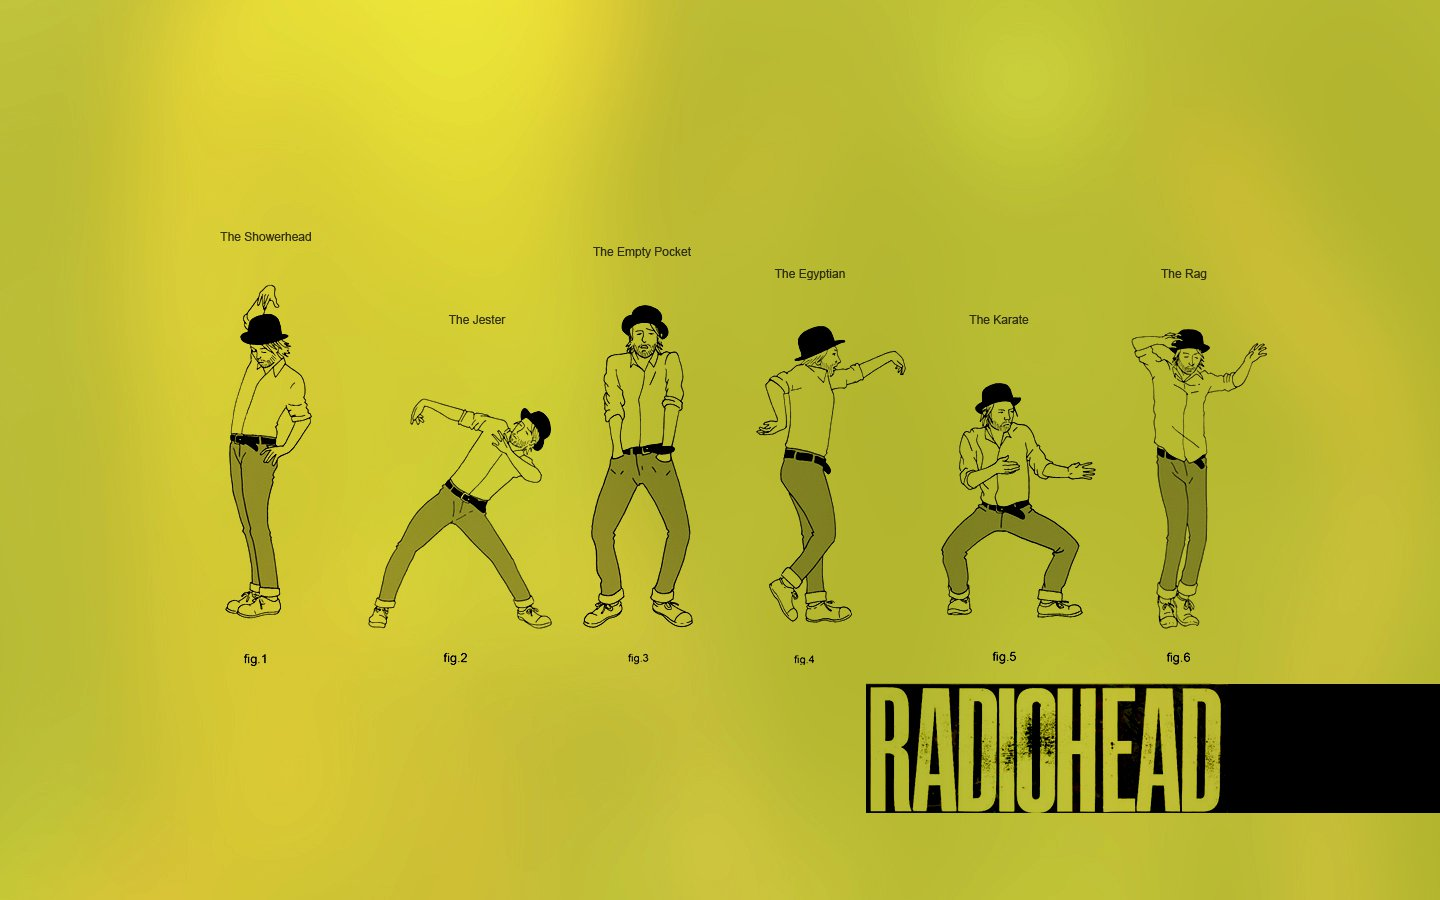 Lotus Flower Dance Radiohead Wallpaper 27519328 Fanpop